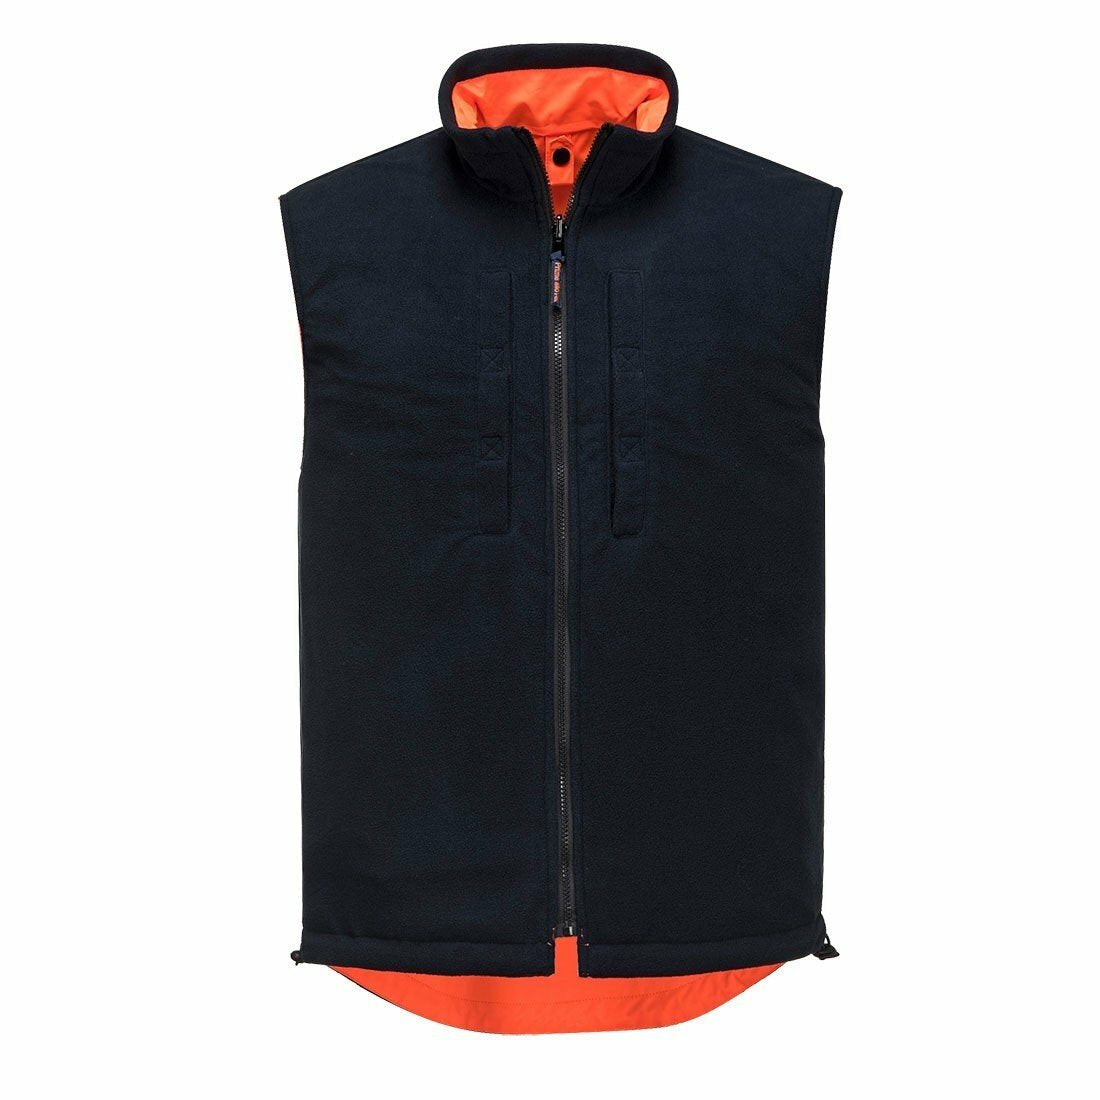 MY214 Polar Fleece Vest with Micro Prism Tape